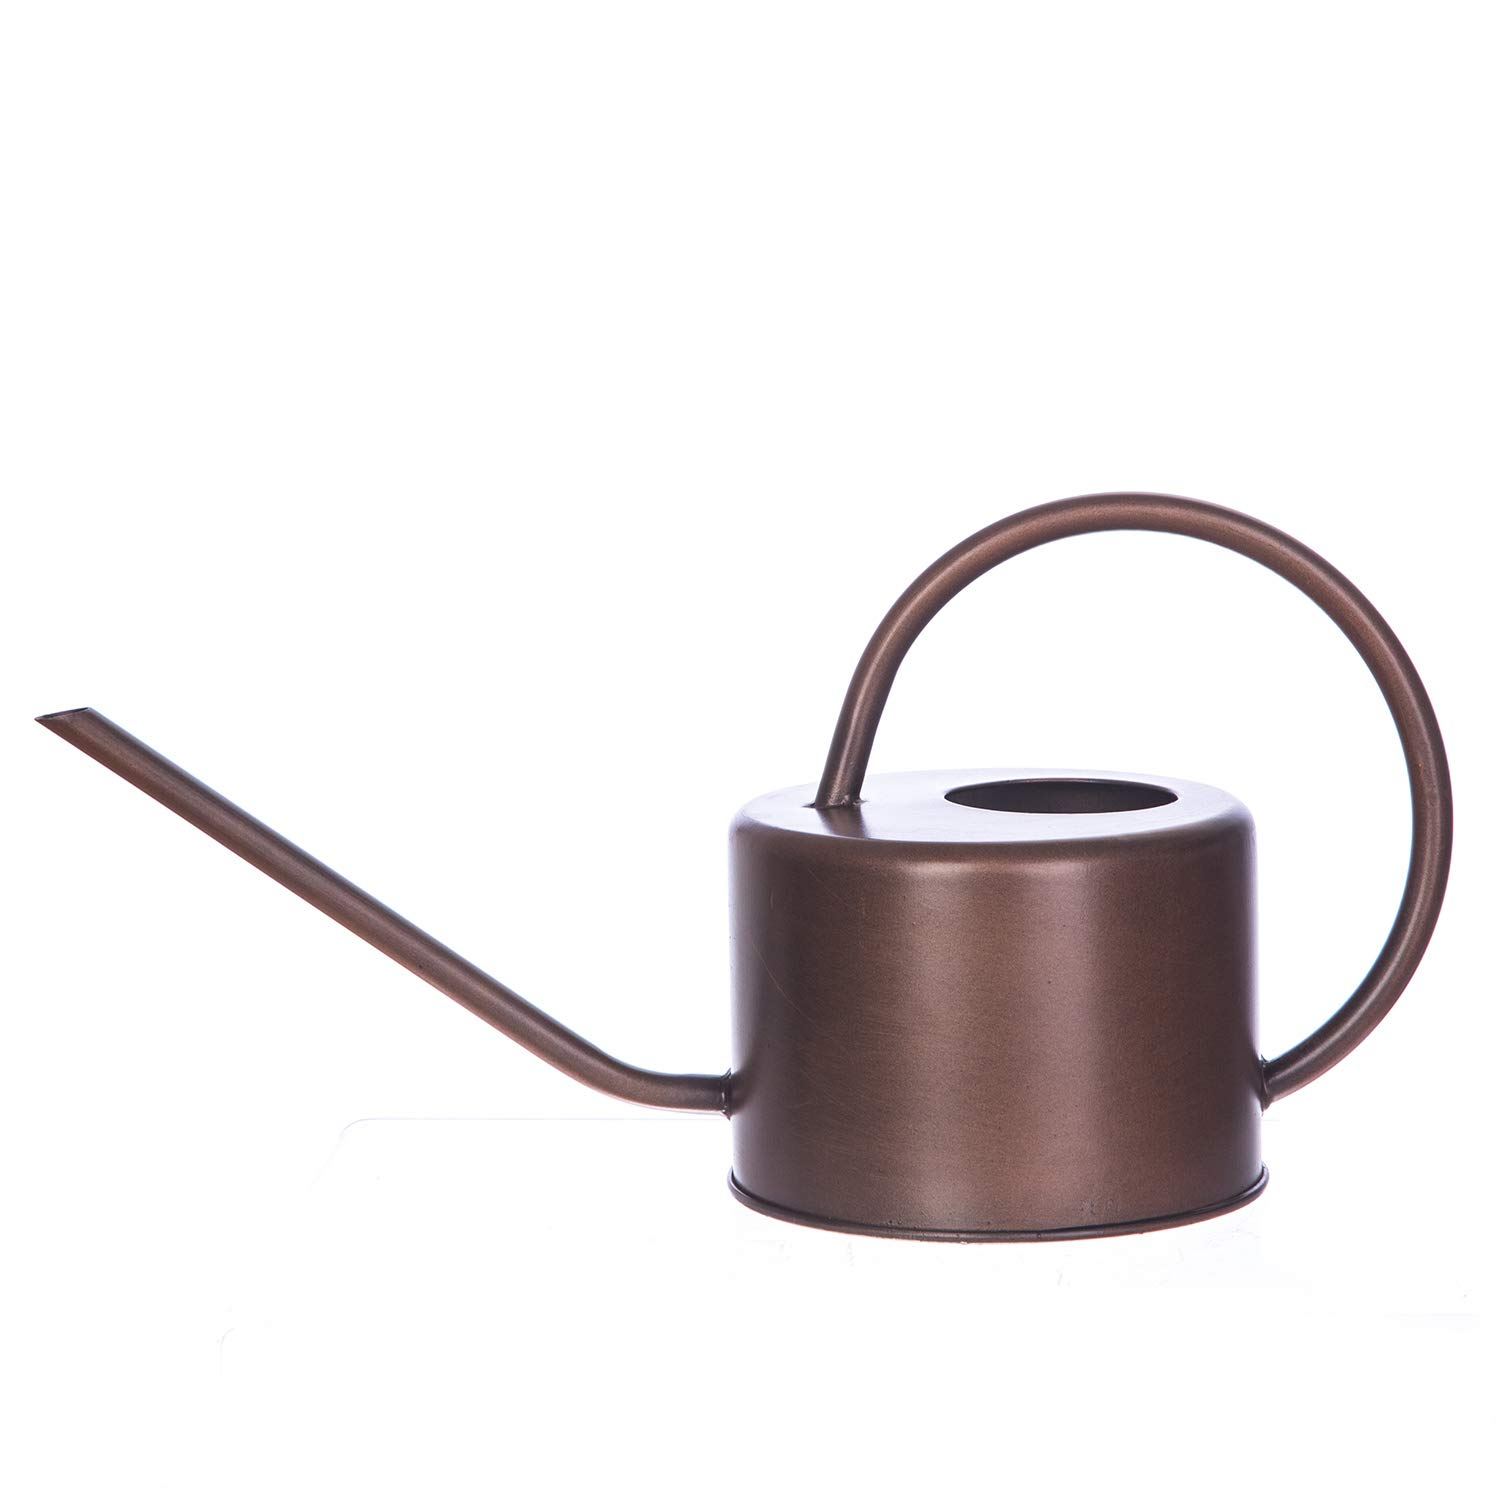 UPAAN 1.5L Plastic Watering Can Lightweight Long Mouth Watering Kettle Indoor Outdoor Home Office Gardening Plant Sprinkling Cans